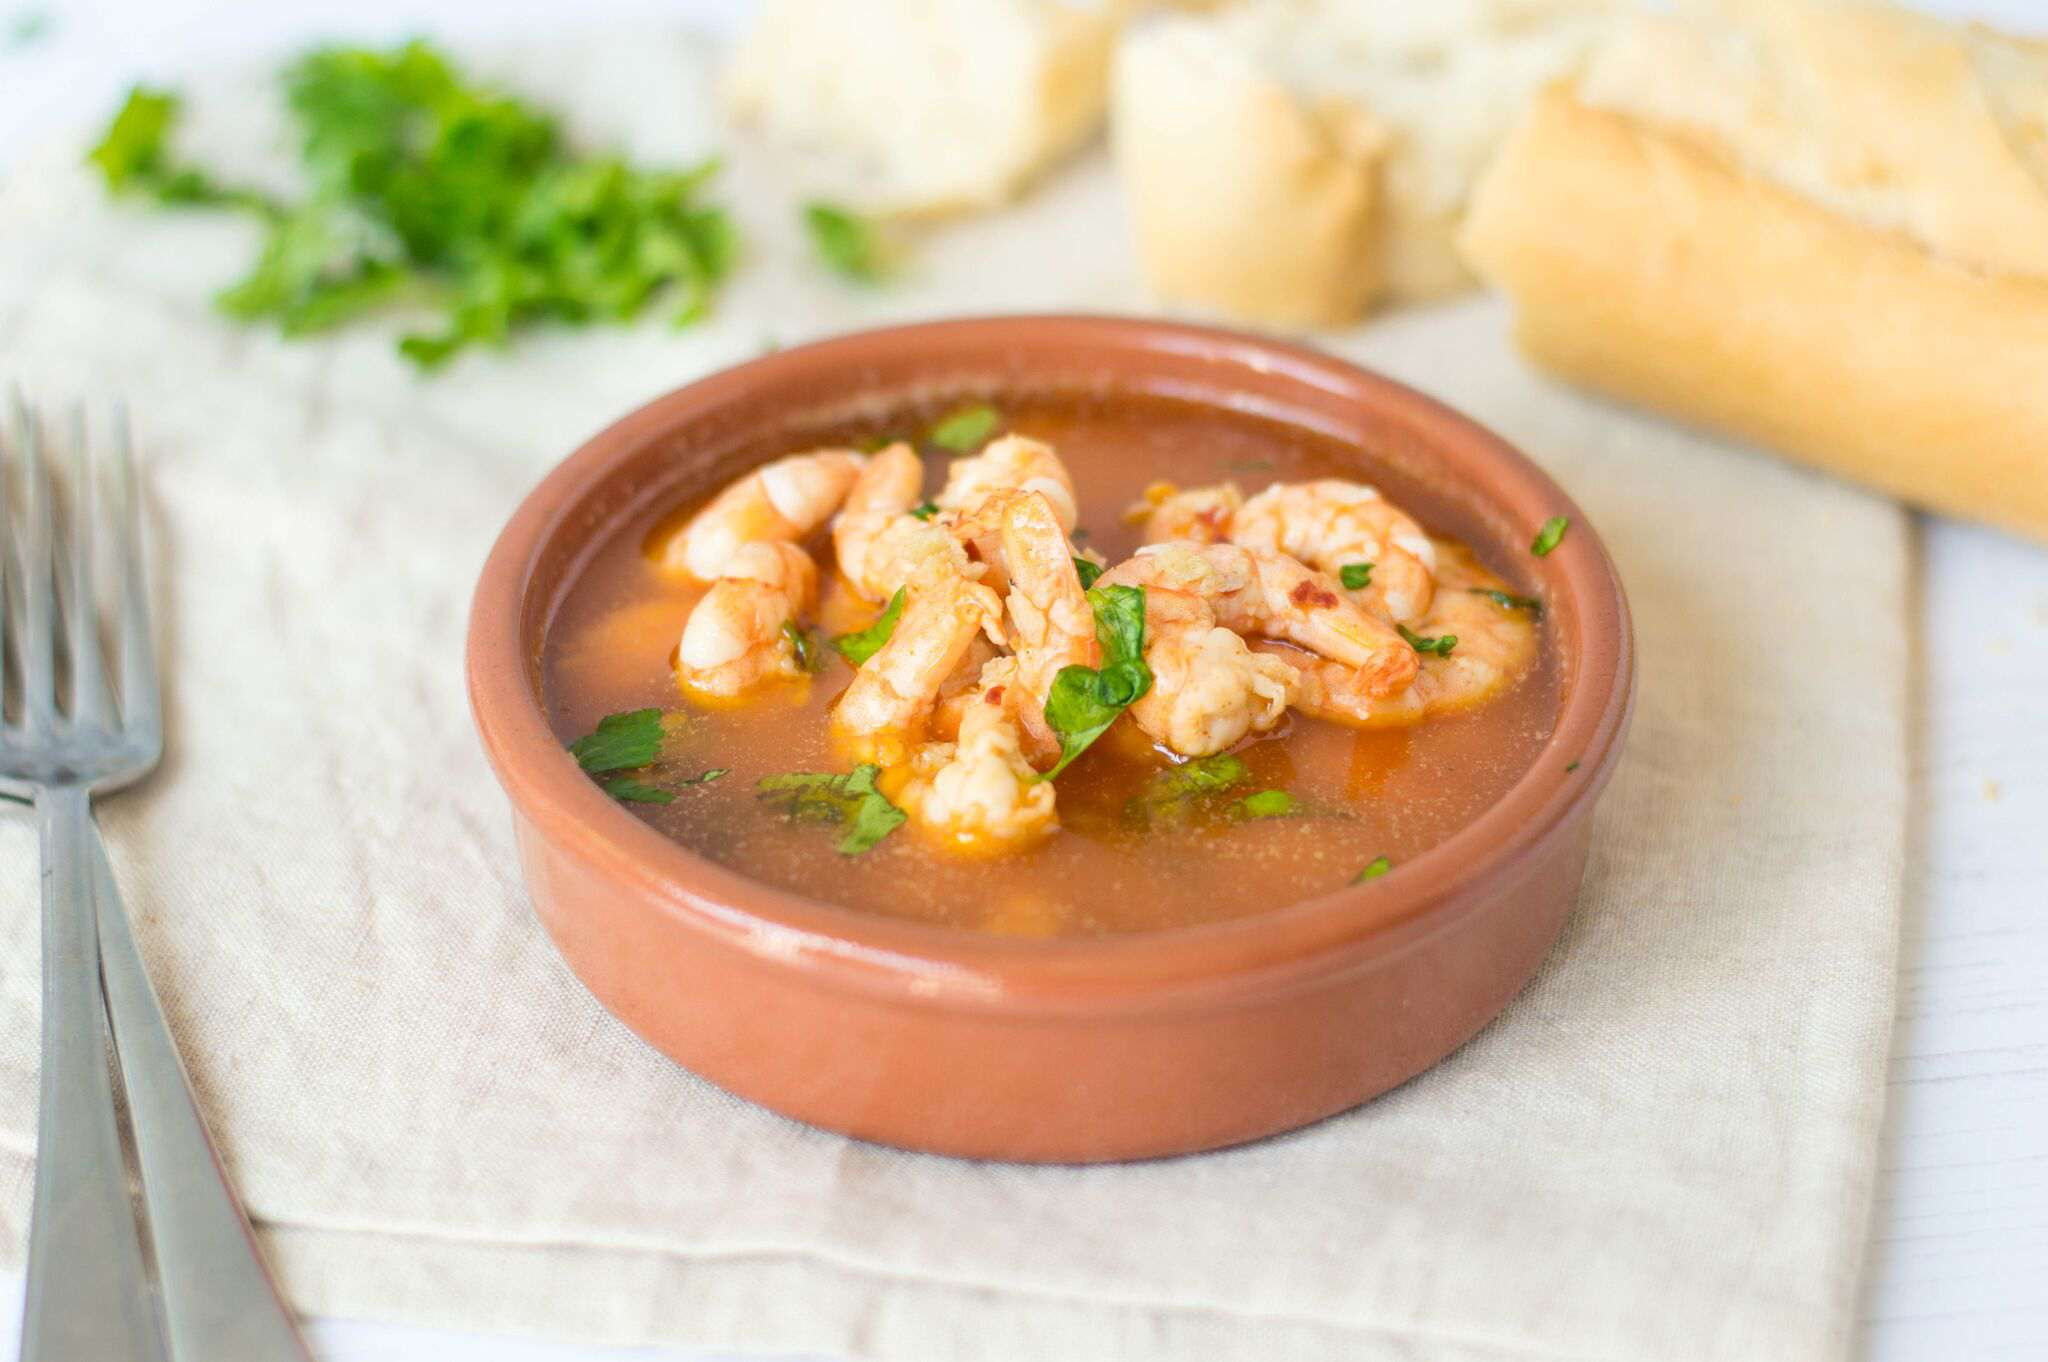 Spanish Garlic Shrimp (Gambas al Ajillo)